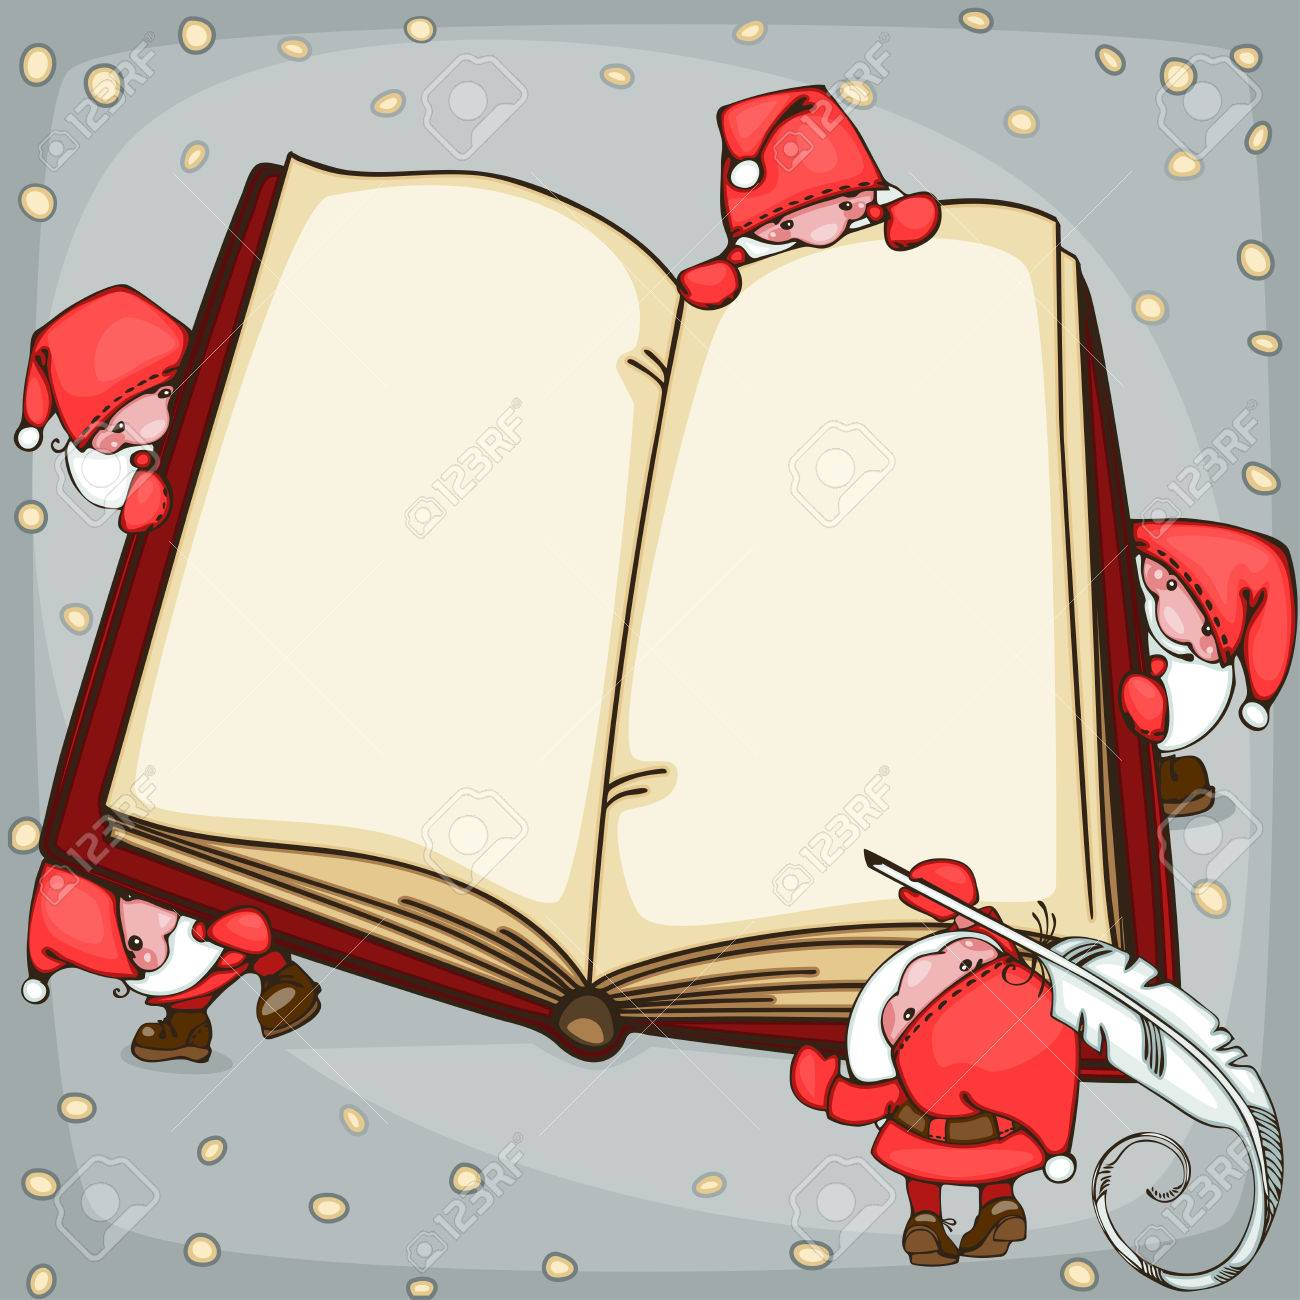 Image result for christmas book